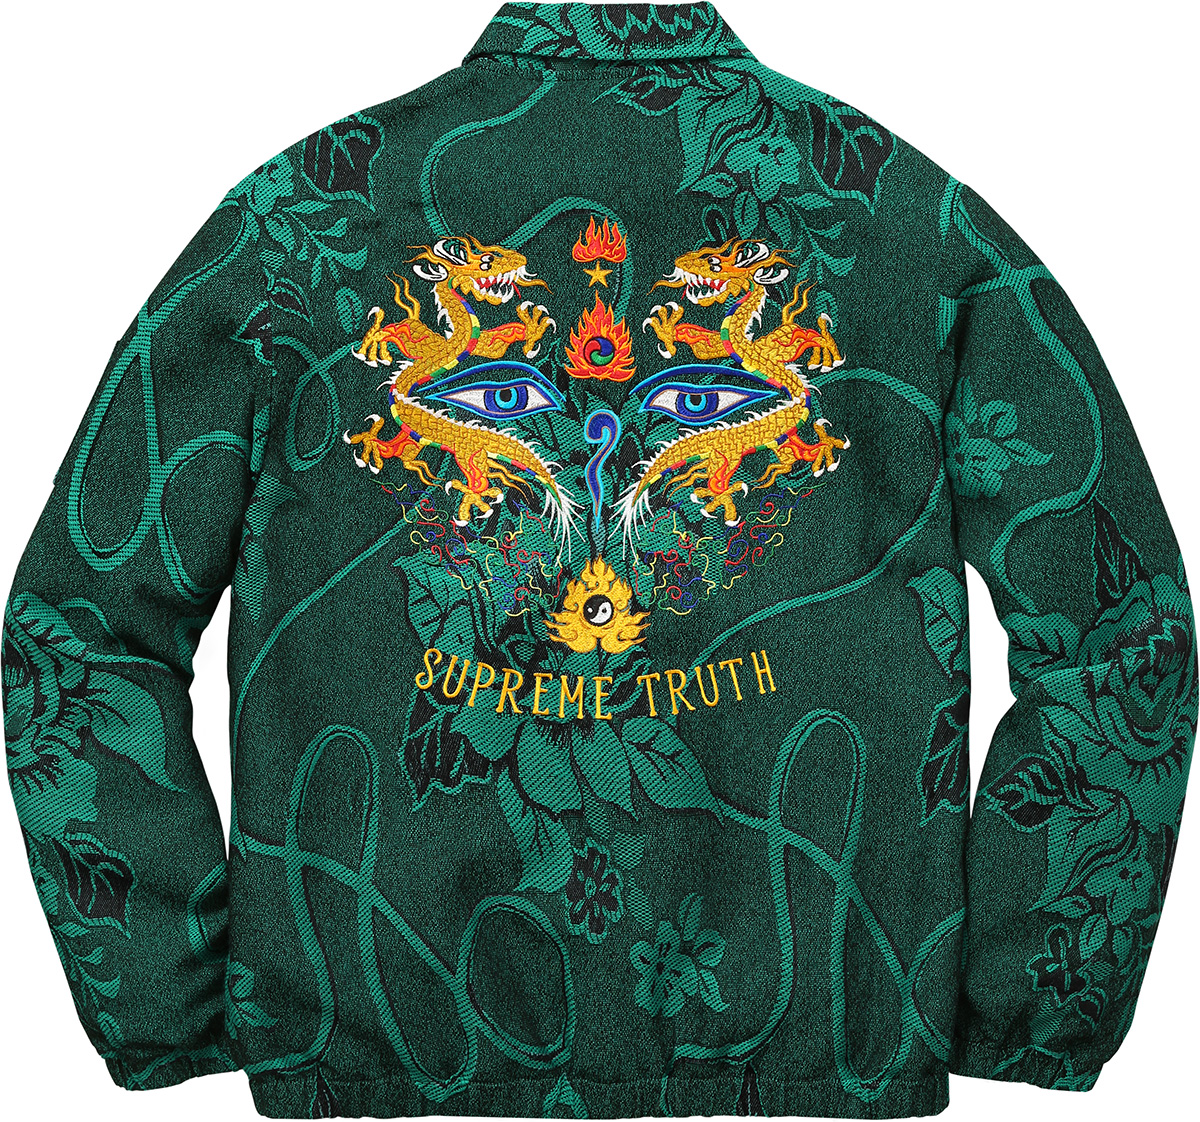 Supreme Supreme Truth Tour Jacket